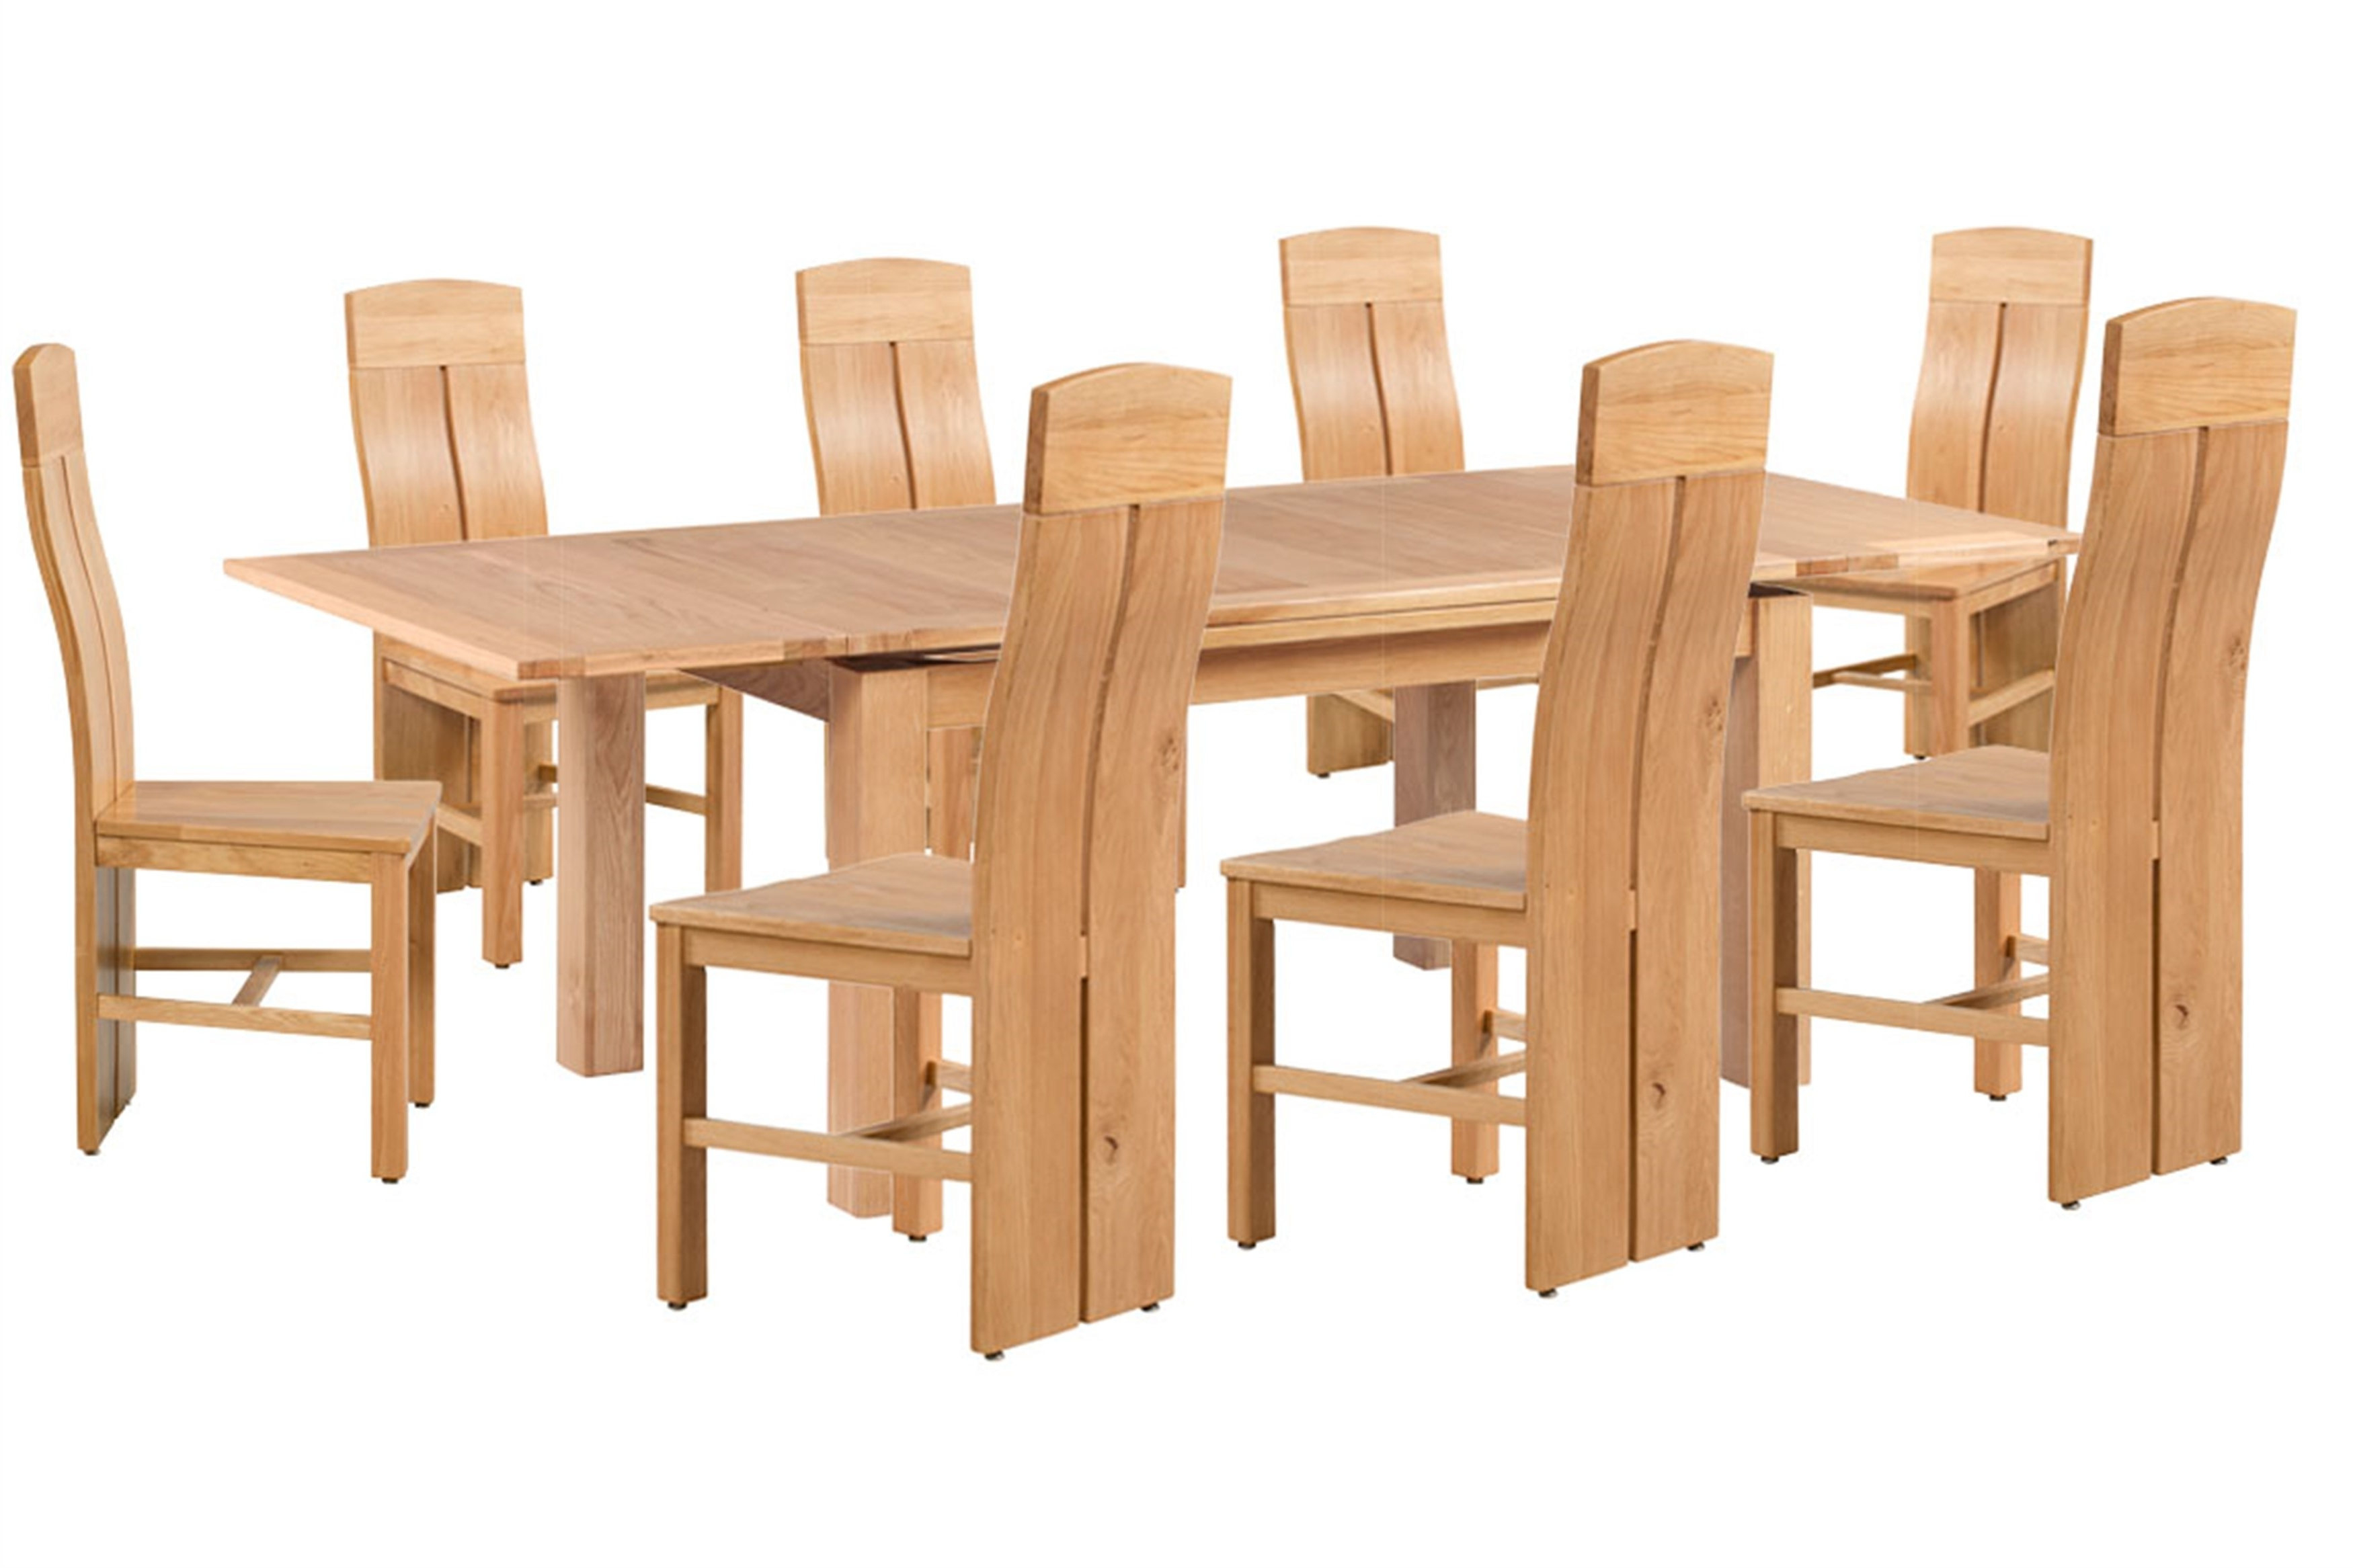 [%Trithi – Oak Tree Furnitures | Summer Sales Up To 45% Off On Select With Regard To Newest Solid Oak Dining Tables And 8 Chairs|Solid Oak Dining Tables And 8 Chairs Regarding Well Liked Trithi – Oak Tree Furnitures | Summer Sales Up To 45% Off On Select|Trendy Solid Oak Dining Tables And 8 Chairs Intended For Trithi – Oak Tree Furnitures | Summer Sales Up To 45% Off On Select|Widely Used Trithi – Oak Tree Furnitures | Summer Sales Up To 45% Off On Select Regarding Solid Oak Dining Tables And 8 Chairs%] (View 1 of 25)